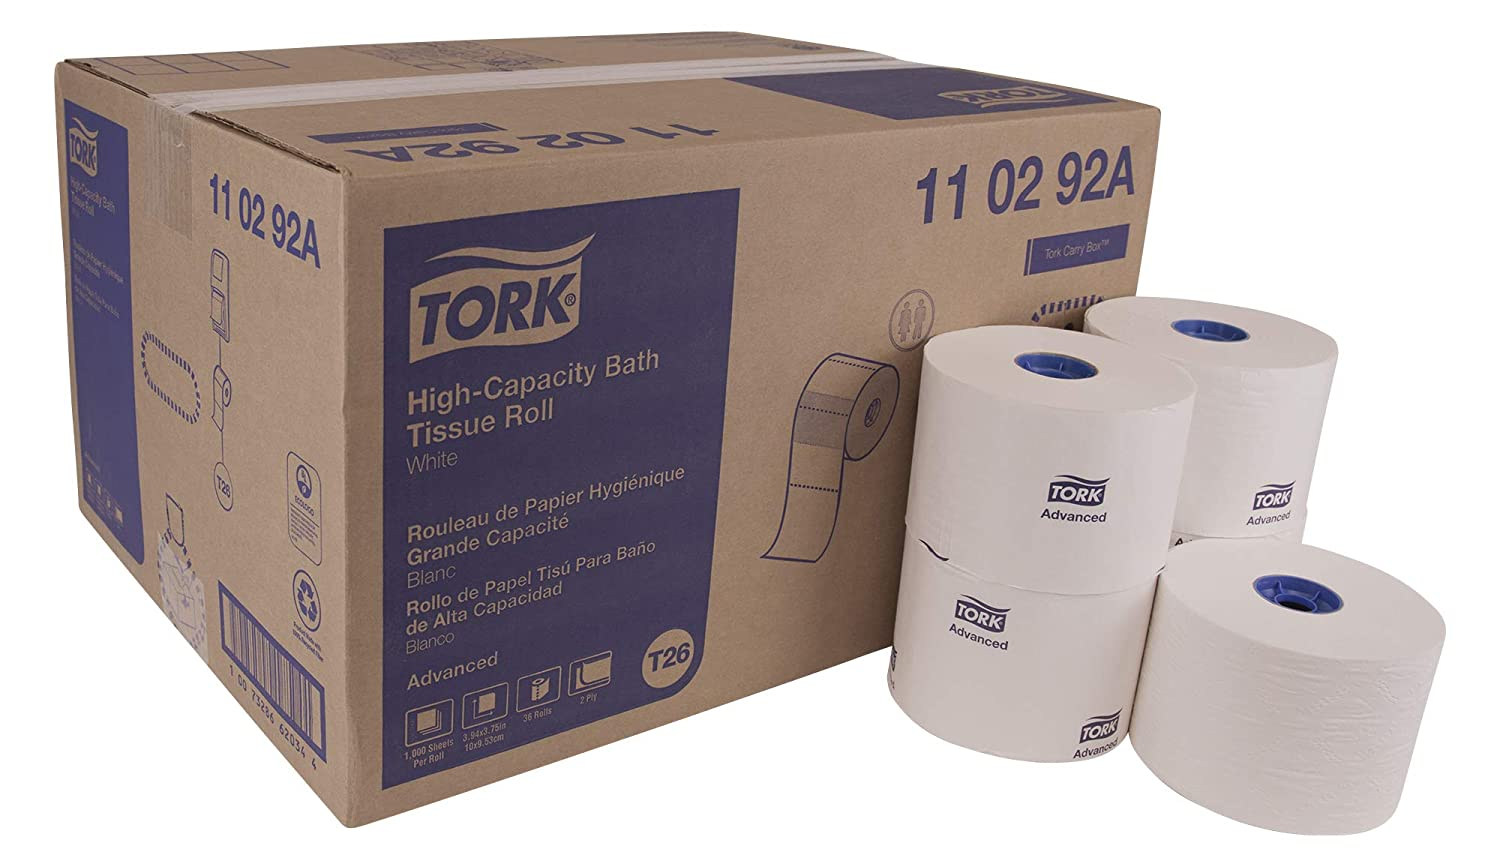 Amazon.com: TORK Advanced 110292A - Rollo de papel de baño ...